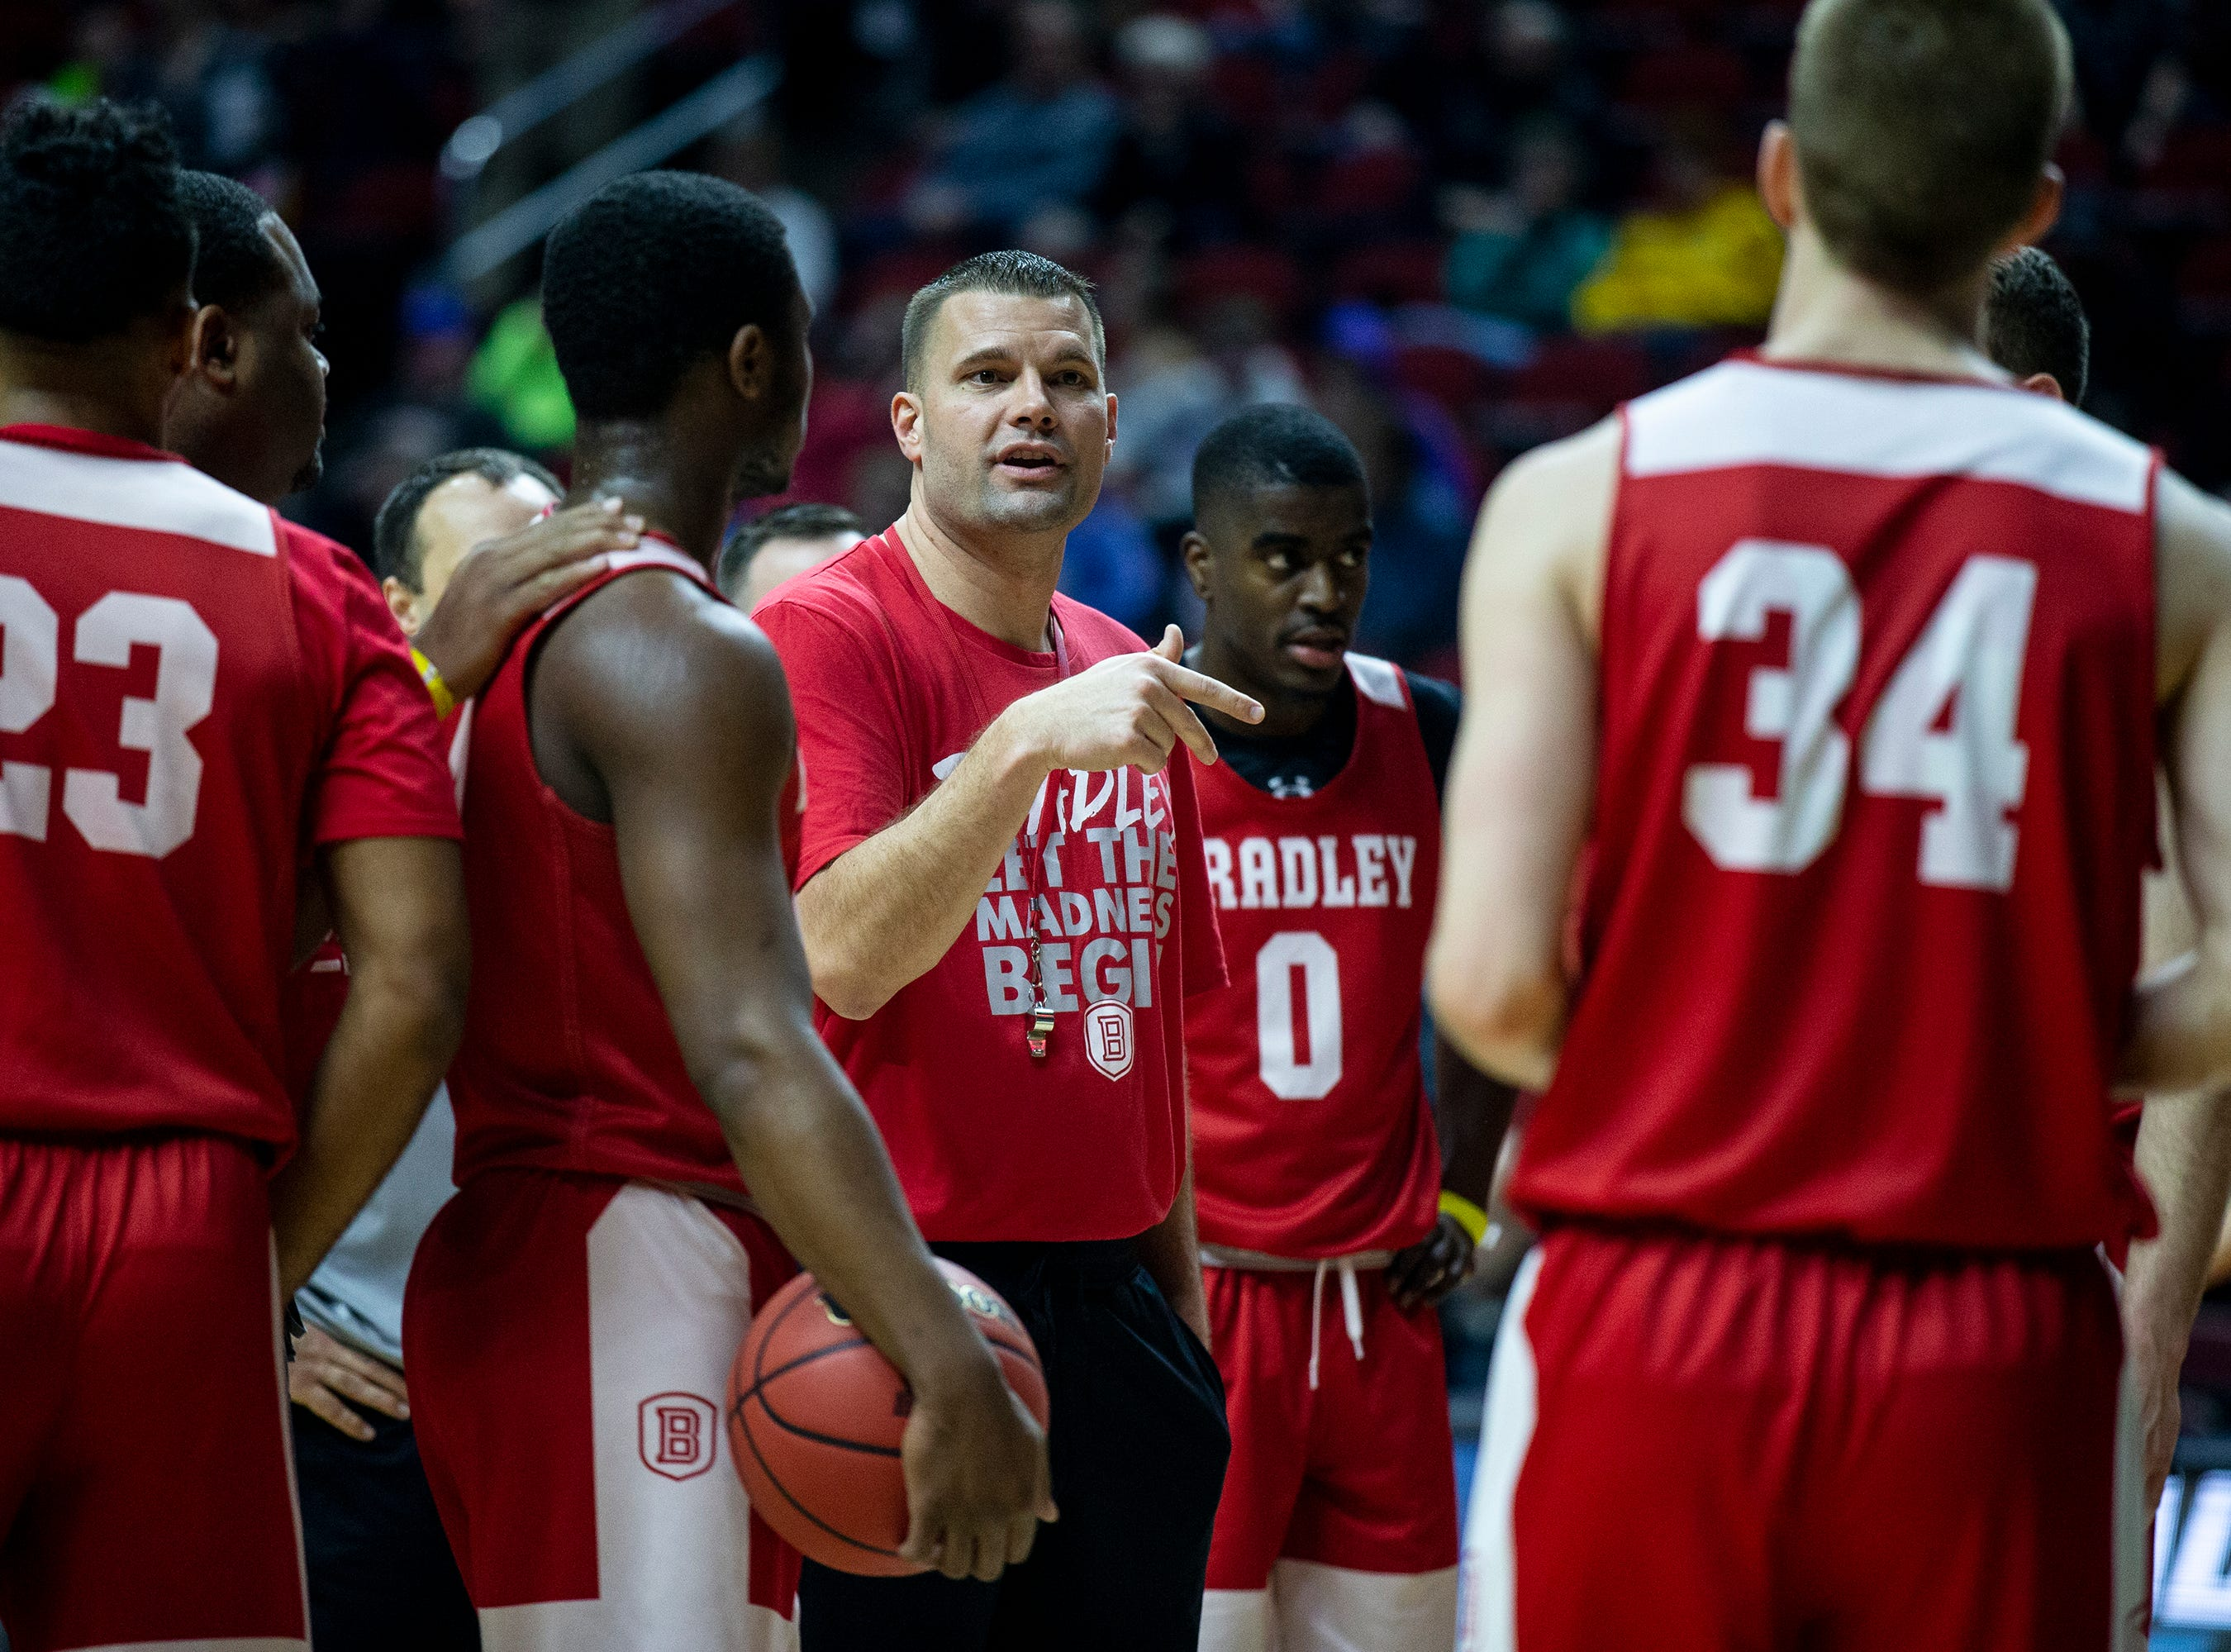 Bradley Head Coach Brian Wardle talks to his team during Bradley's open practice before the first round of the NCAA Men's Basketball Tournament on Wednesday, March 20, 2019, at Wells Fargo Arena in Des Moines, Iowa.